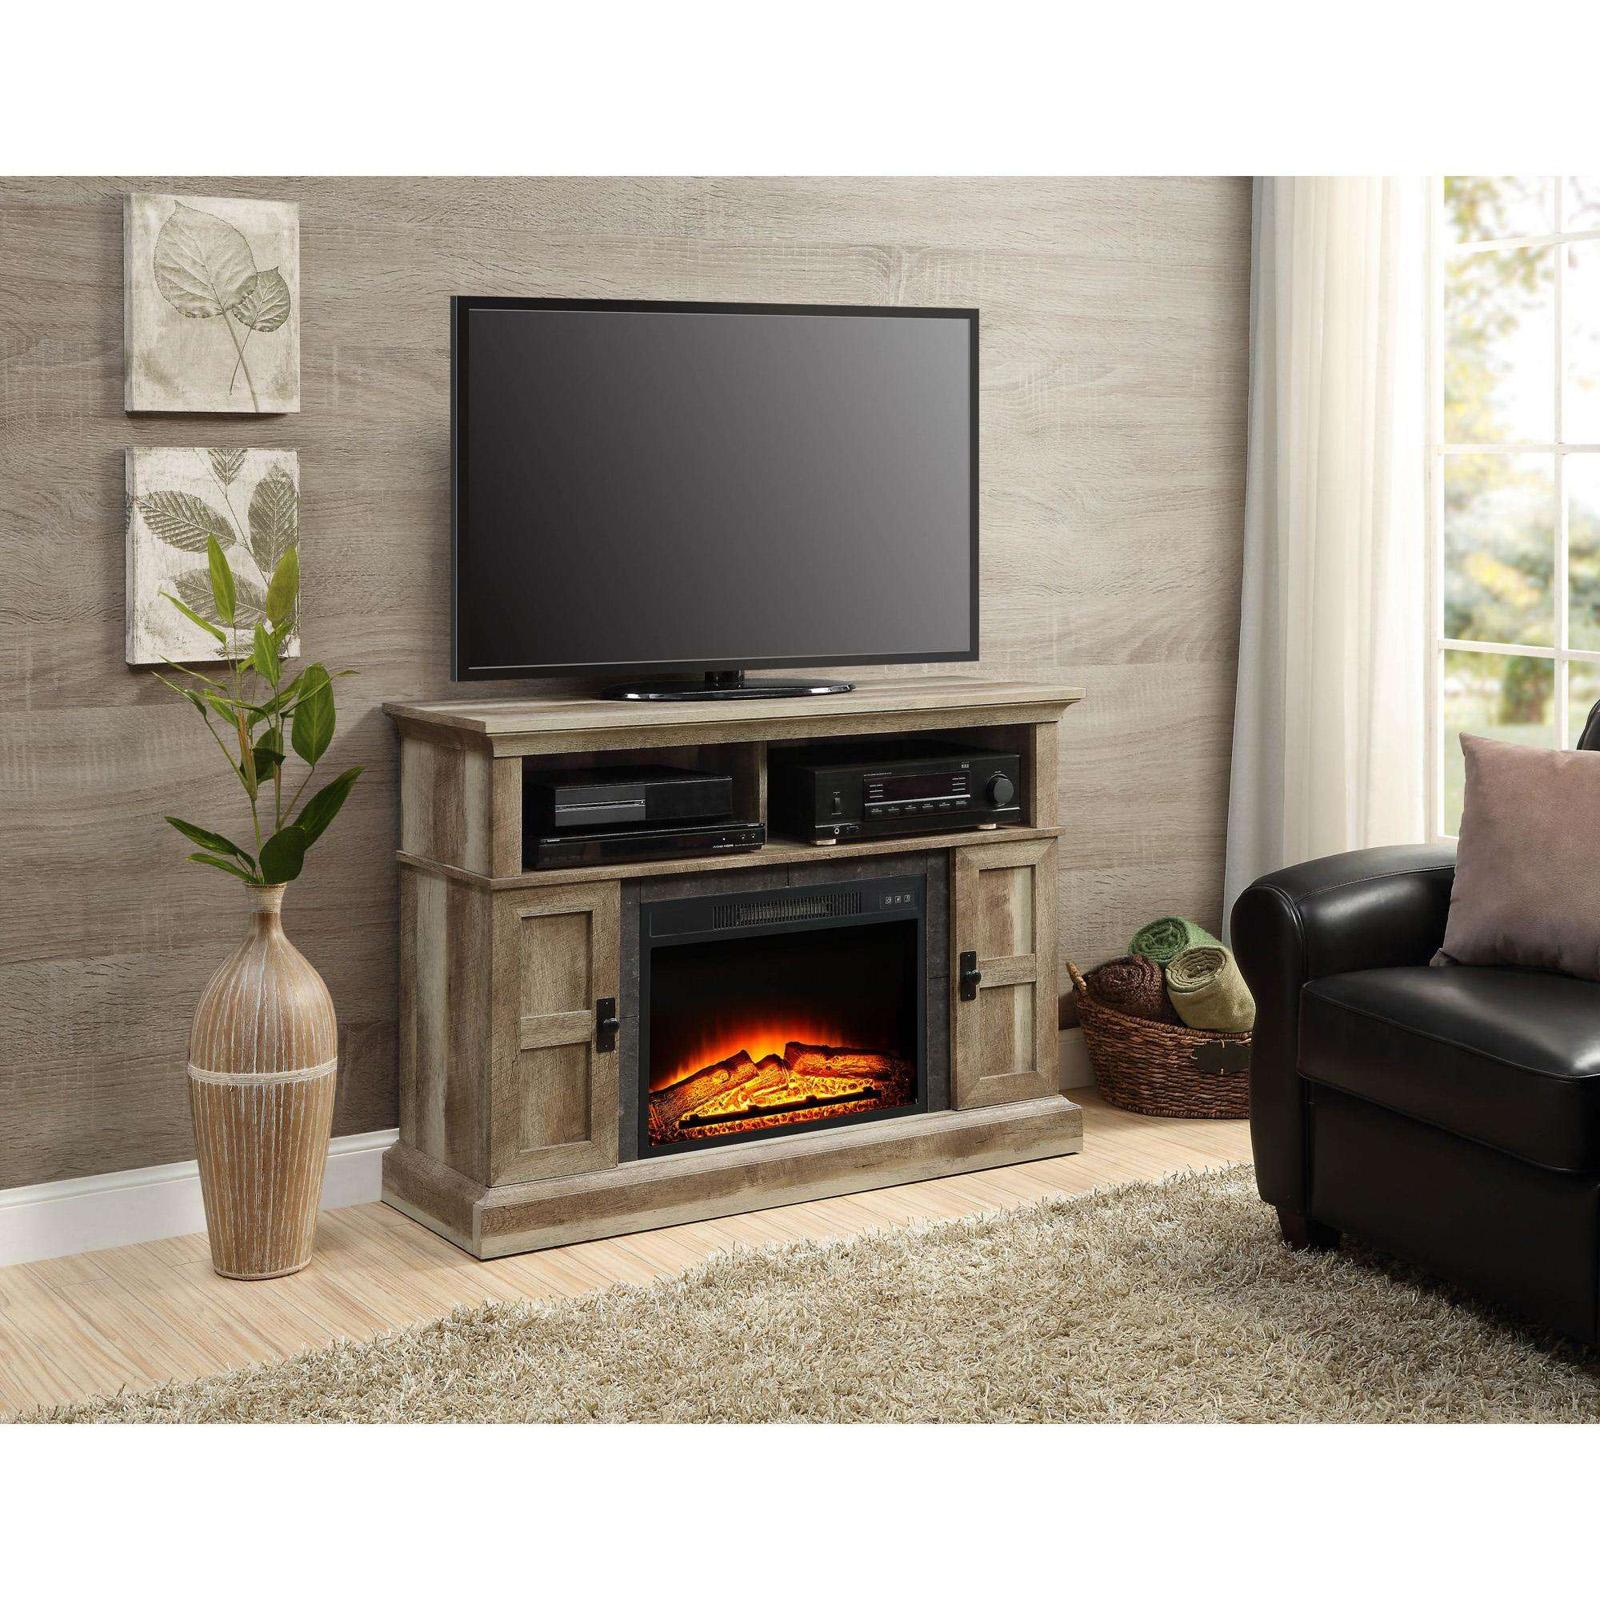 Whalen Media Fireplace Console Shop Your Way Online Shopping Earn Points On Tools